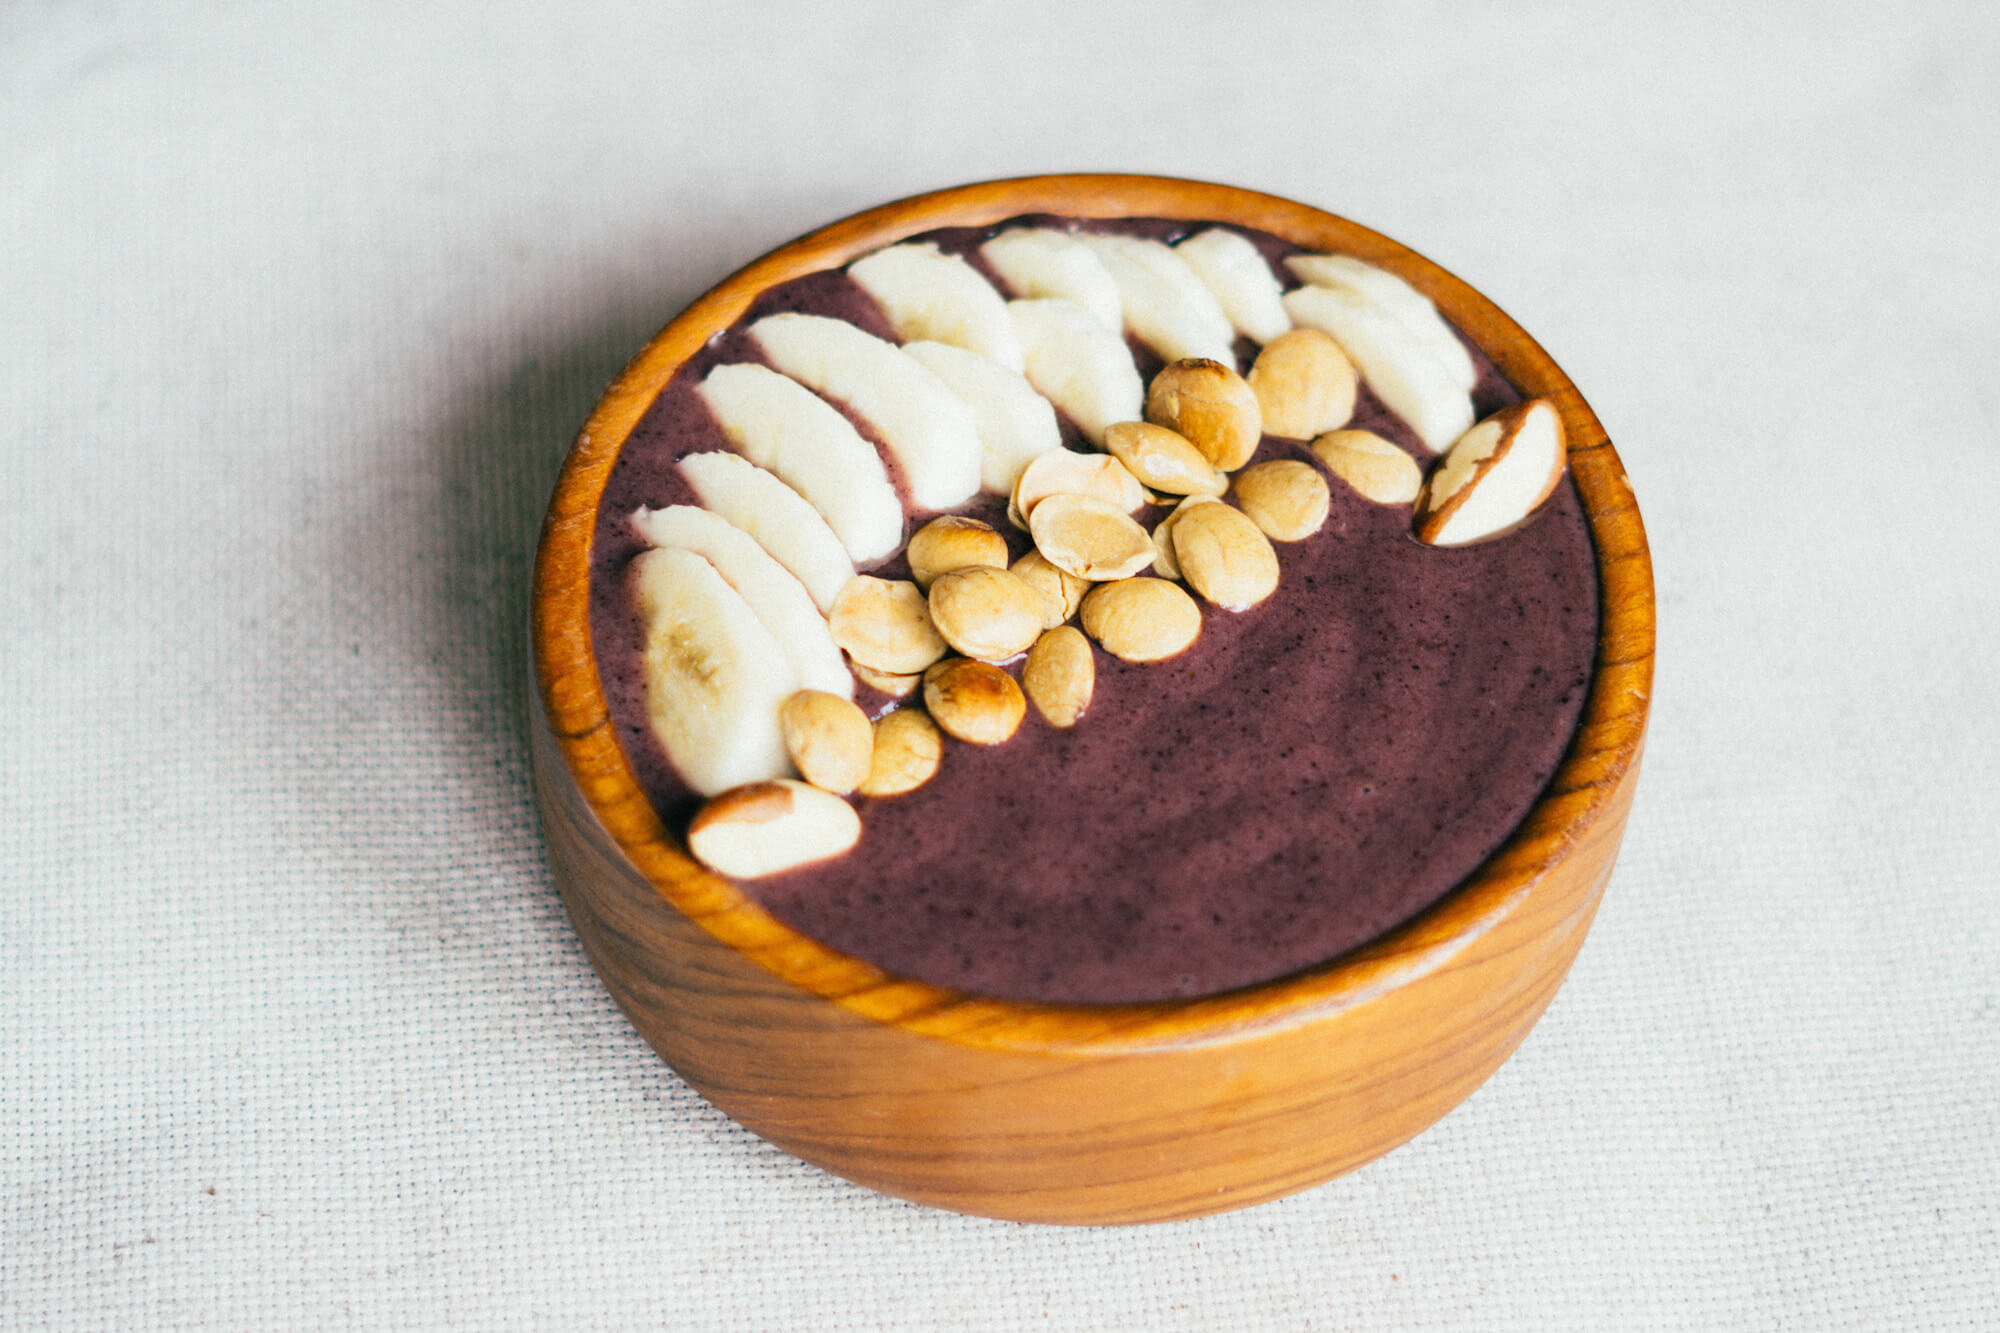 Recipe for an Amazonian açaí bowl with bananas and sacha inchi seeds